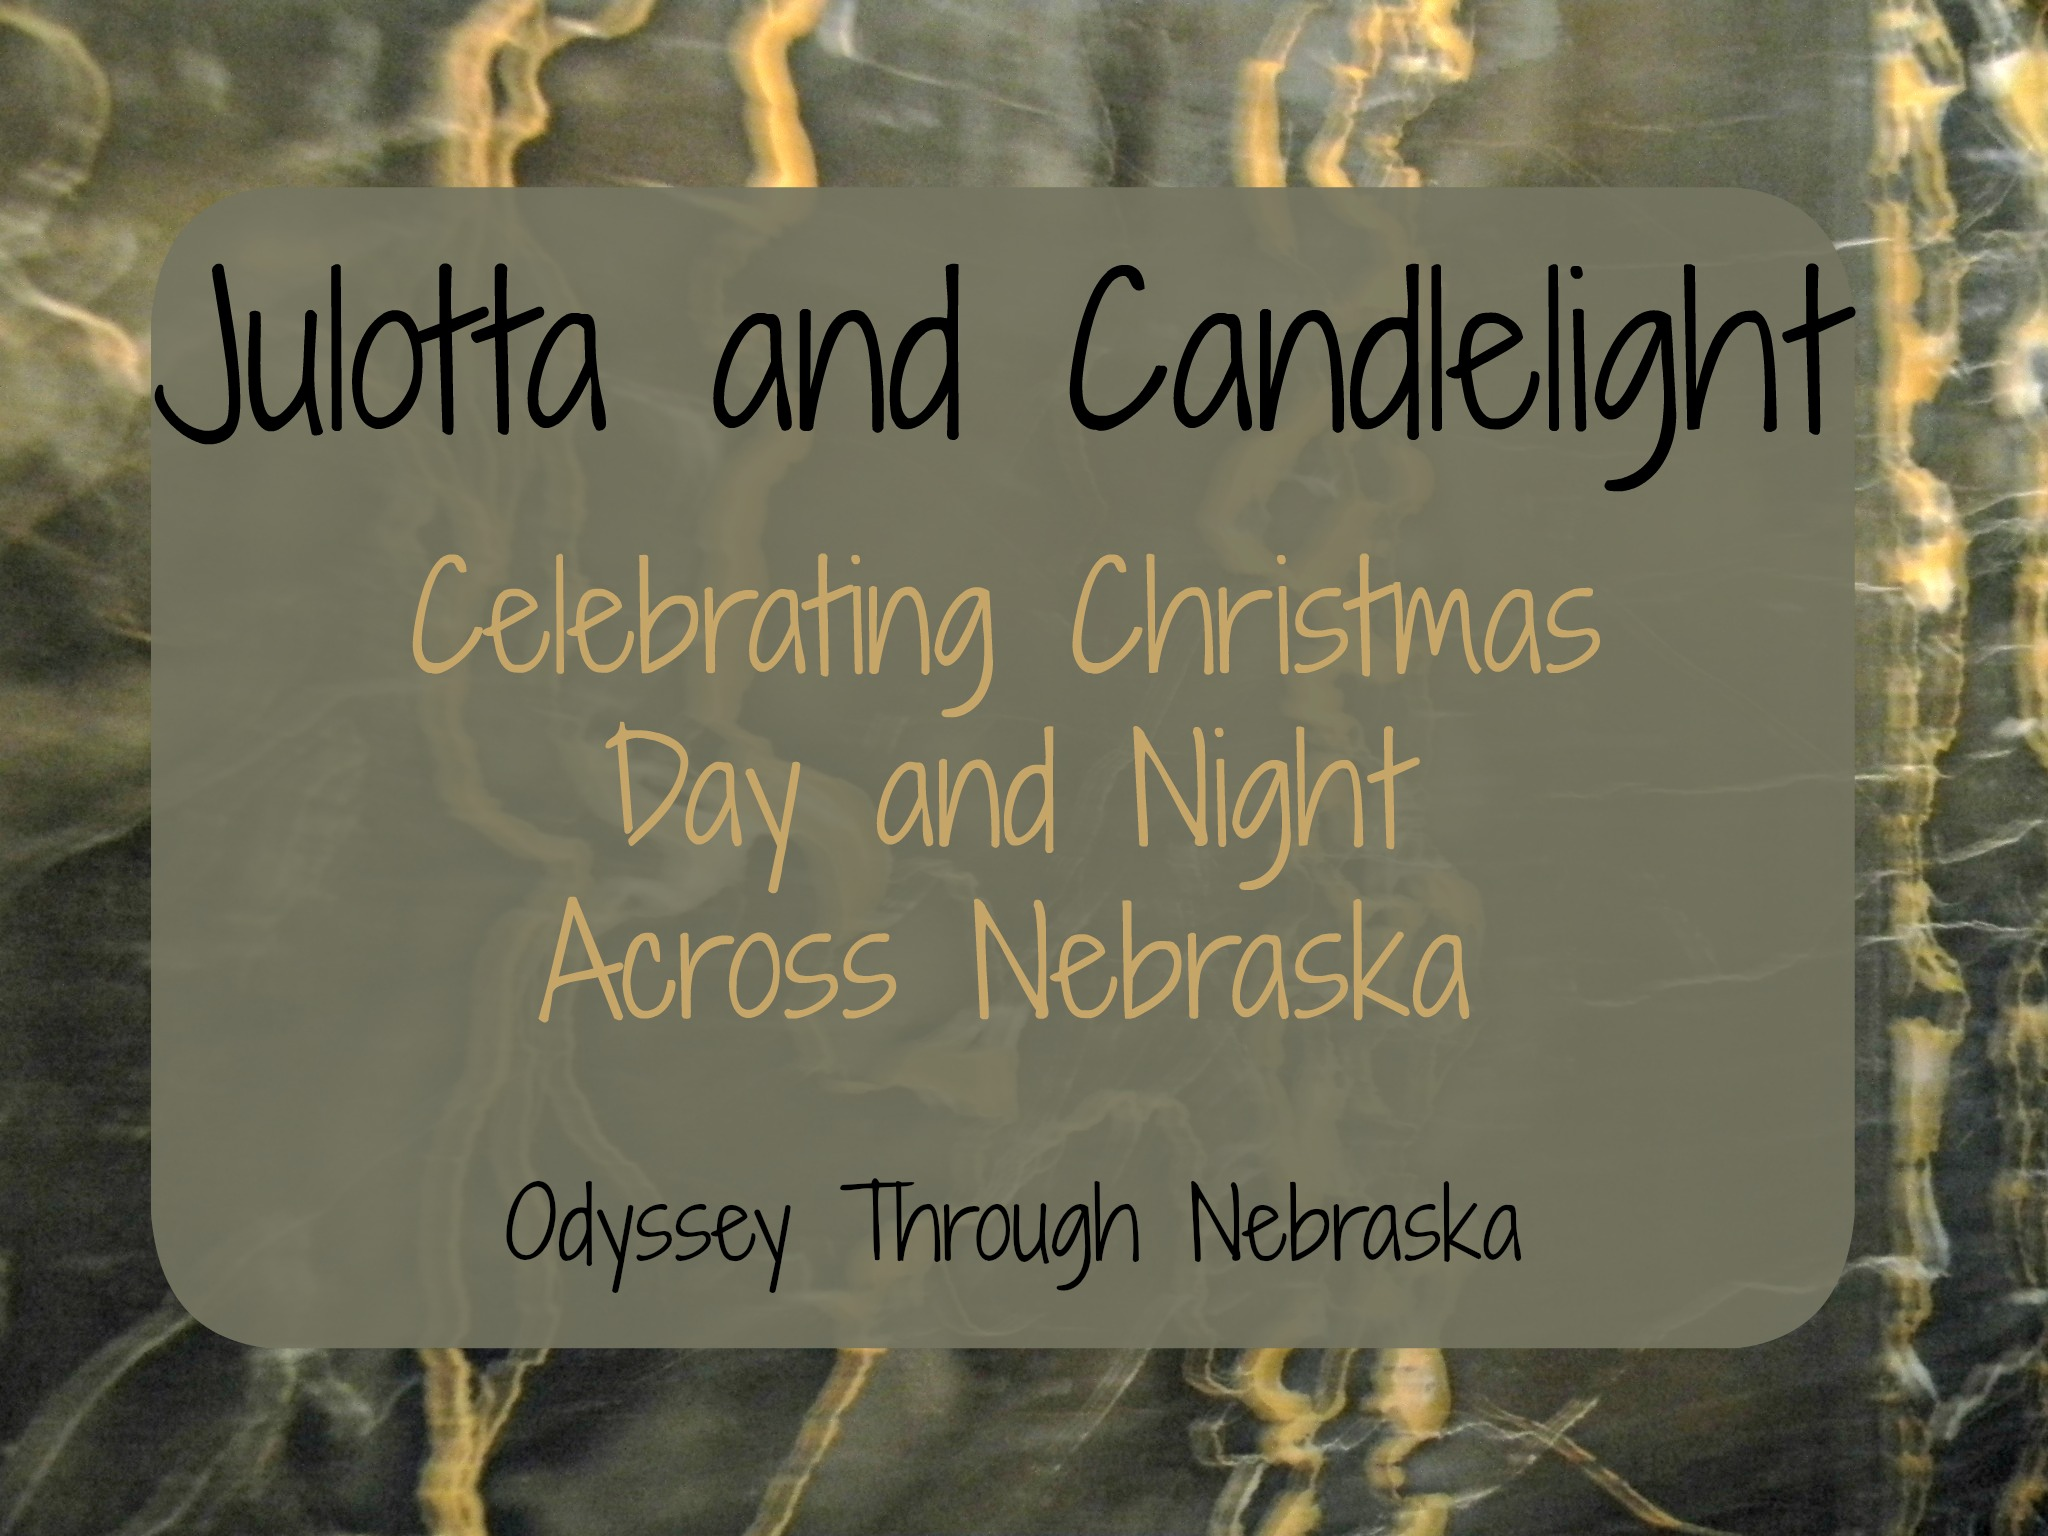 Whether at an early morning Julotta service or midnight candlelight service, Christmas is celebrated across Nebraska